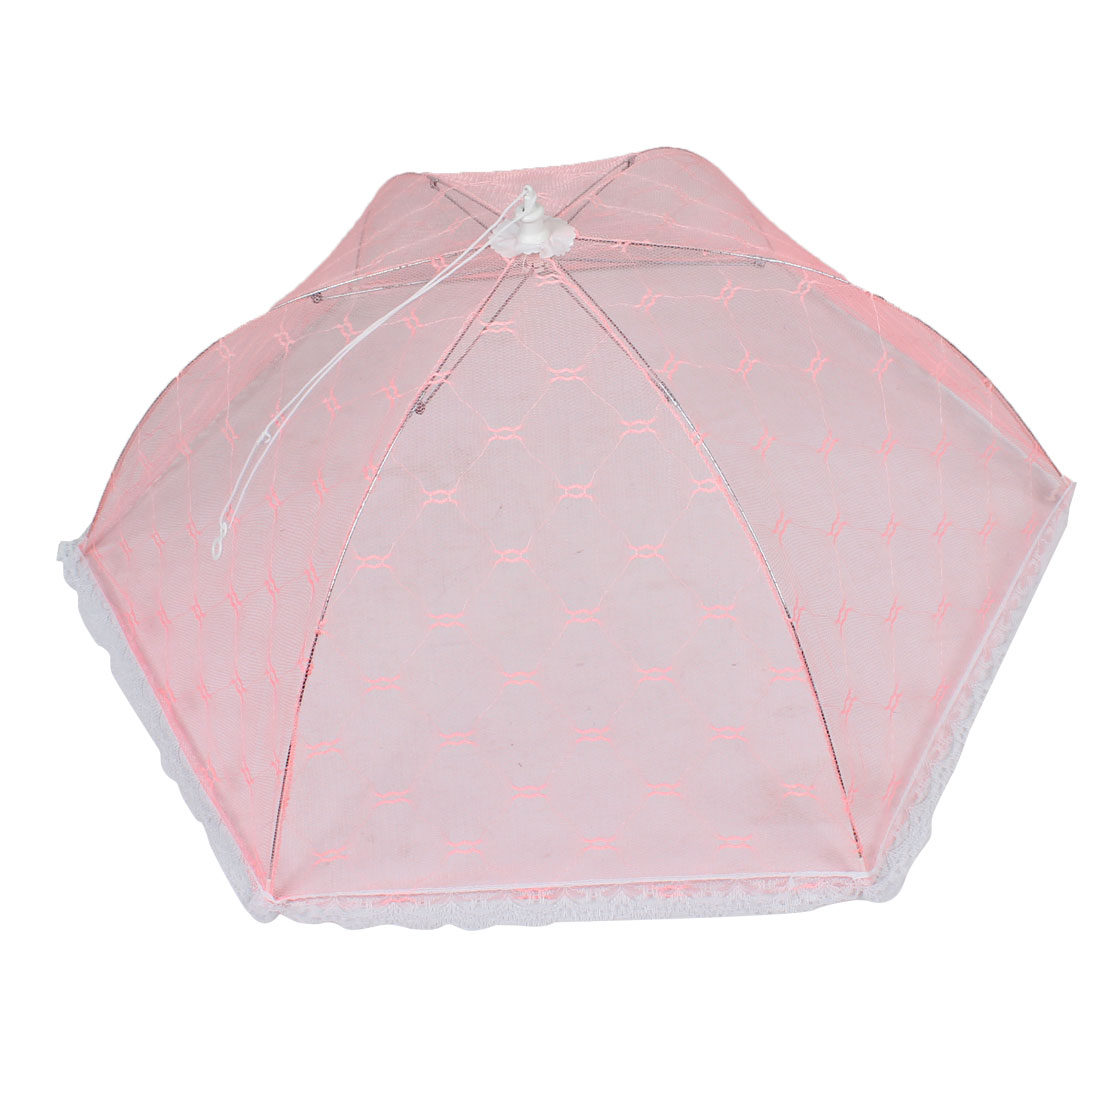 Home Kitchen White Lace Trim Foldable Pink Mesh Dish Food Cover Umbrella